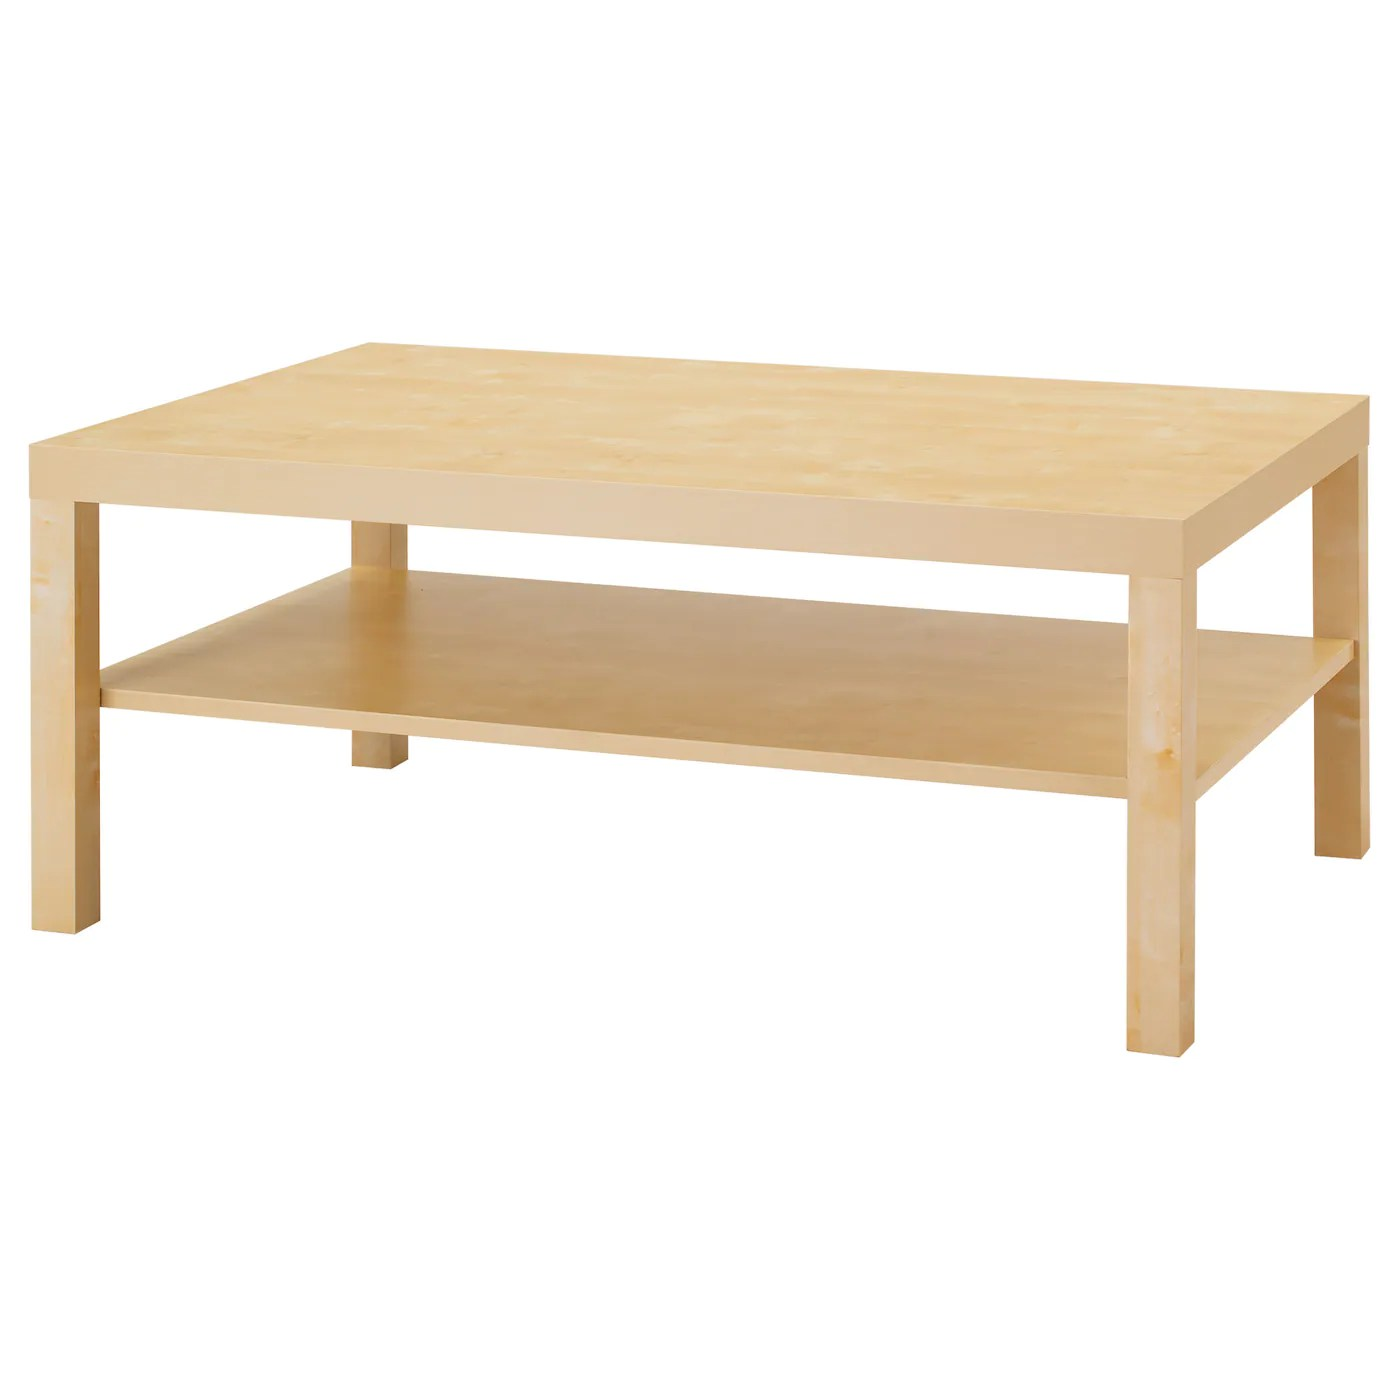 Ikea Lack Couchtisch Lack Coffee Table Birch Effect 118 X 78 Cm Ikea